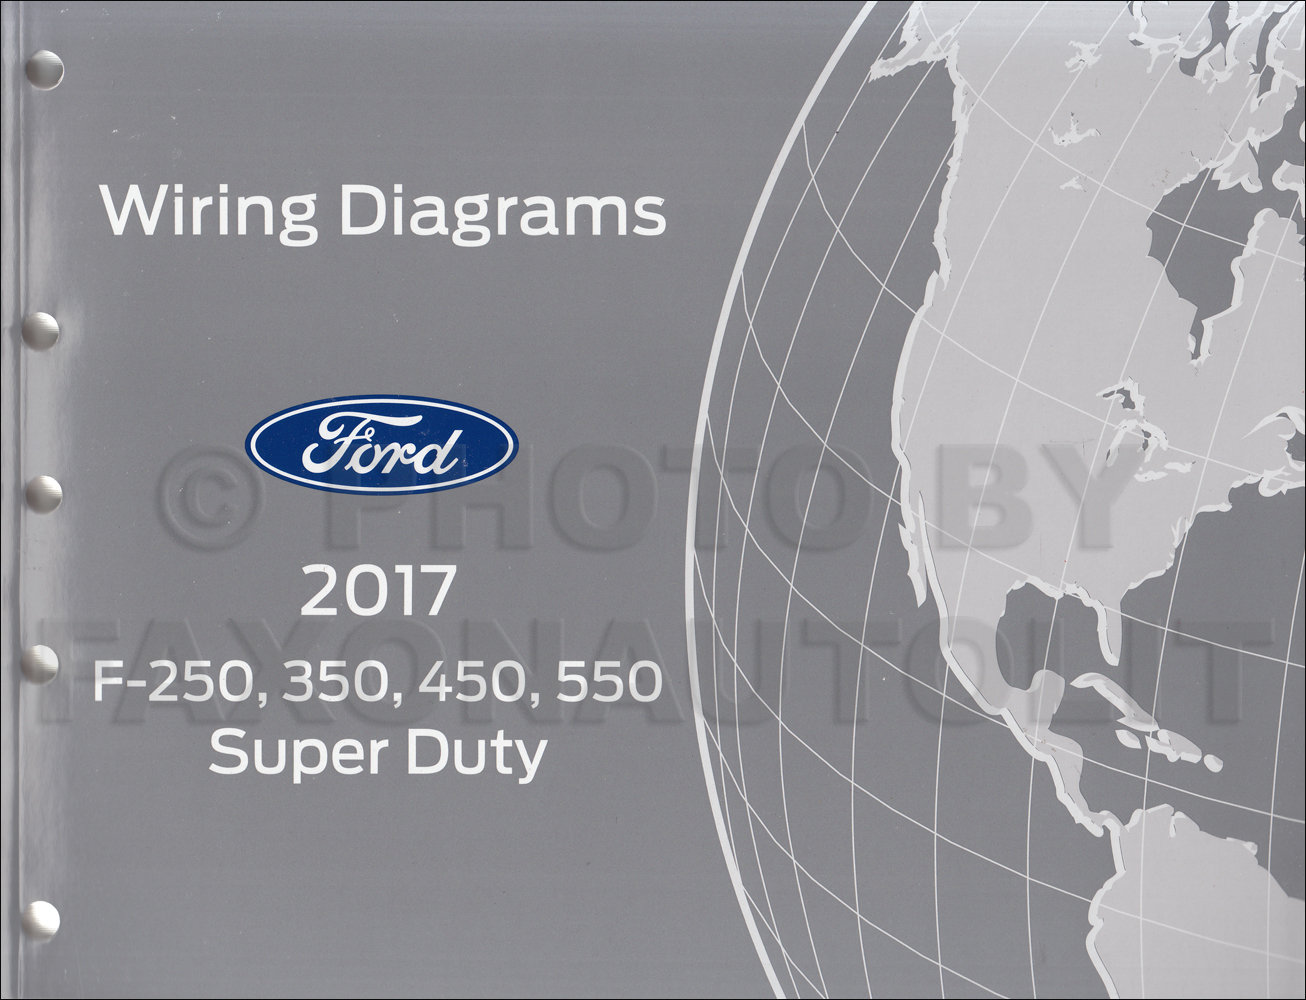 Ford F550 Wiring Diagrams 2015 Diagram 2017 F250 Super Dutytruck Manual Original Rh Faxonautoliterature Com 2016